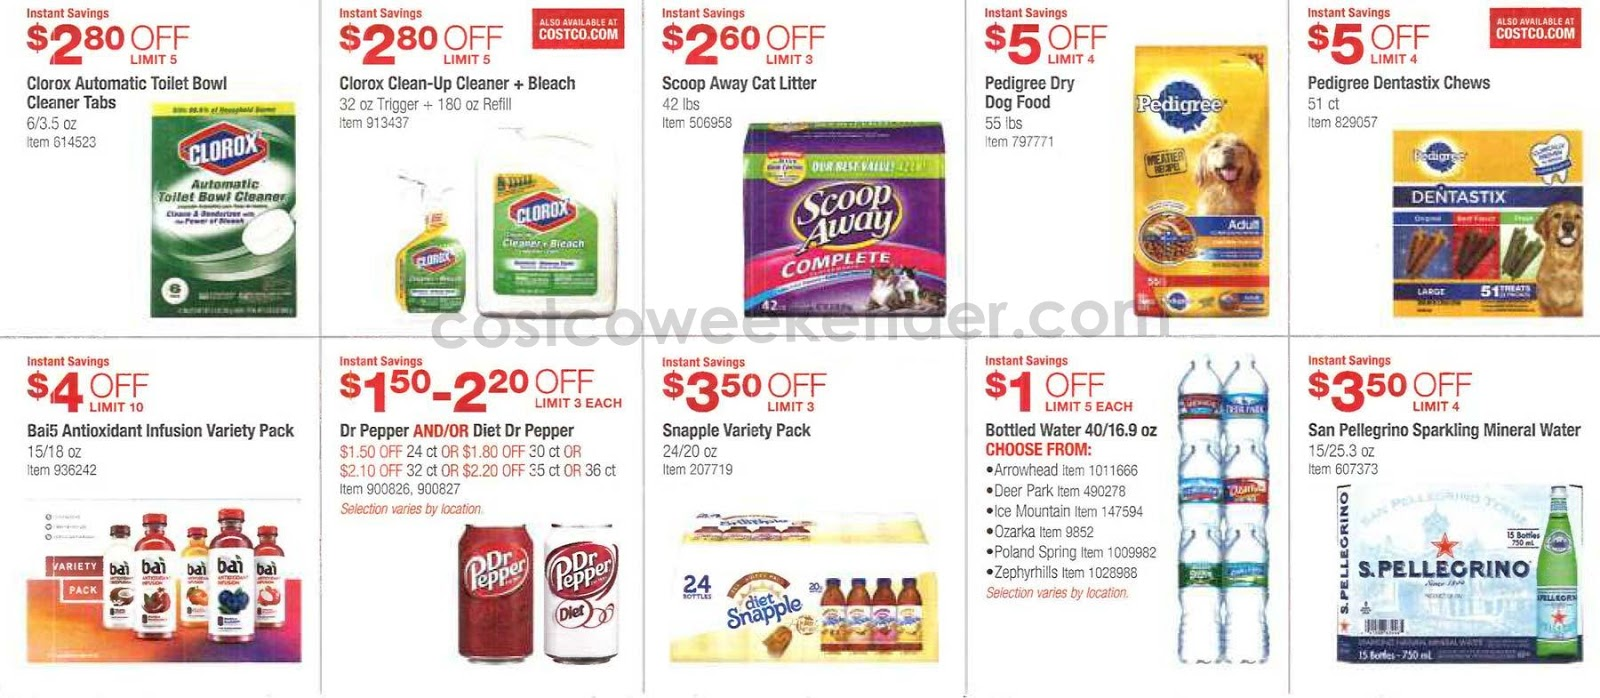 Current Costco Coupon Book March 2016 Costco Weekender